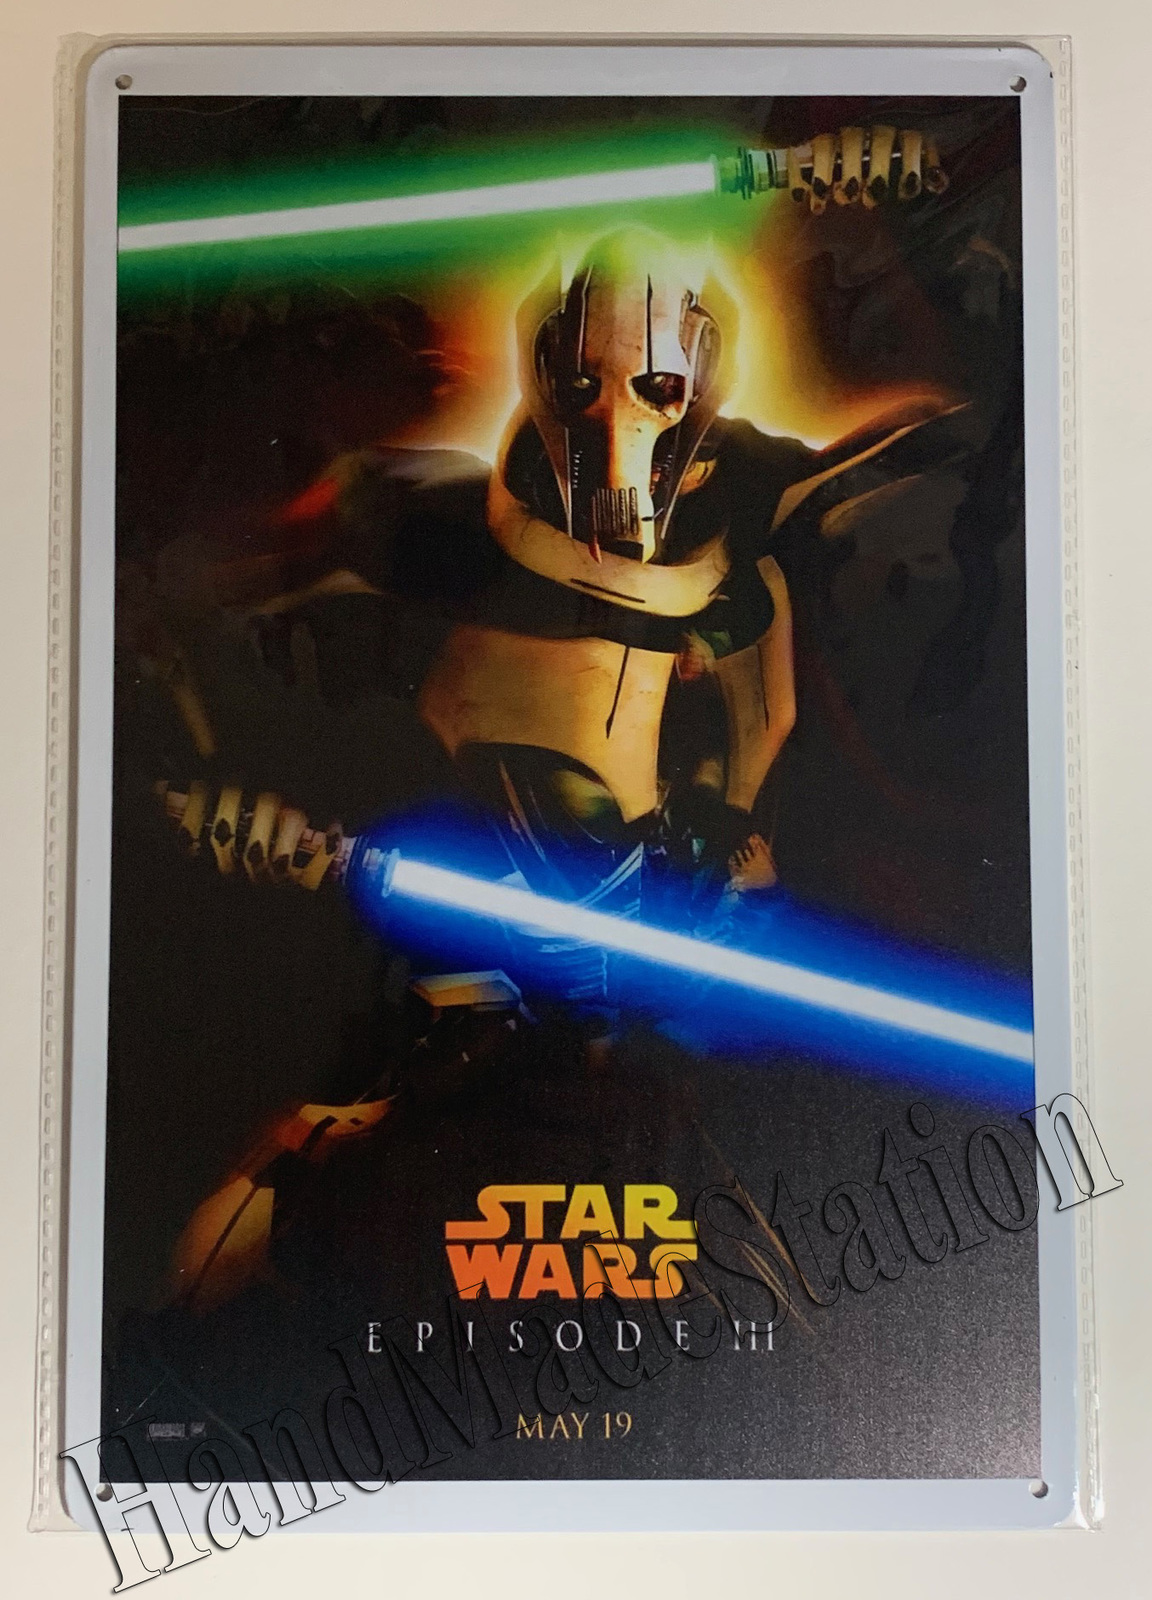 "Star Wars Episode 3 General Grievous Wall Metal Sign plate Home decor 11.75"" x 7"